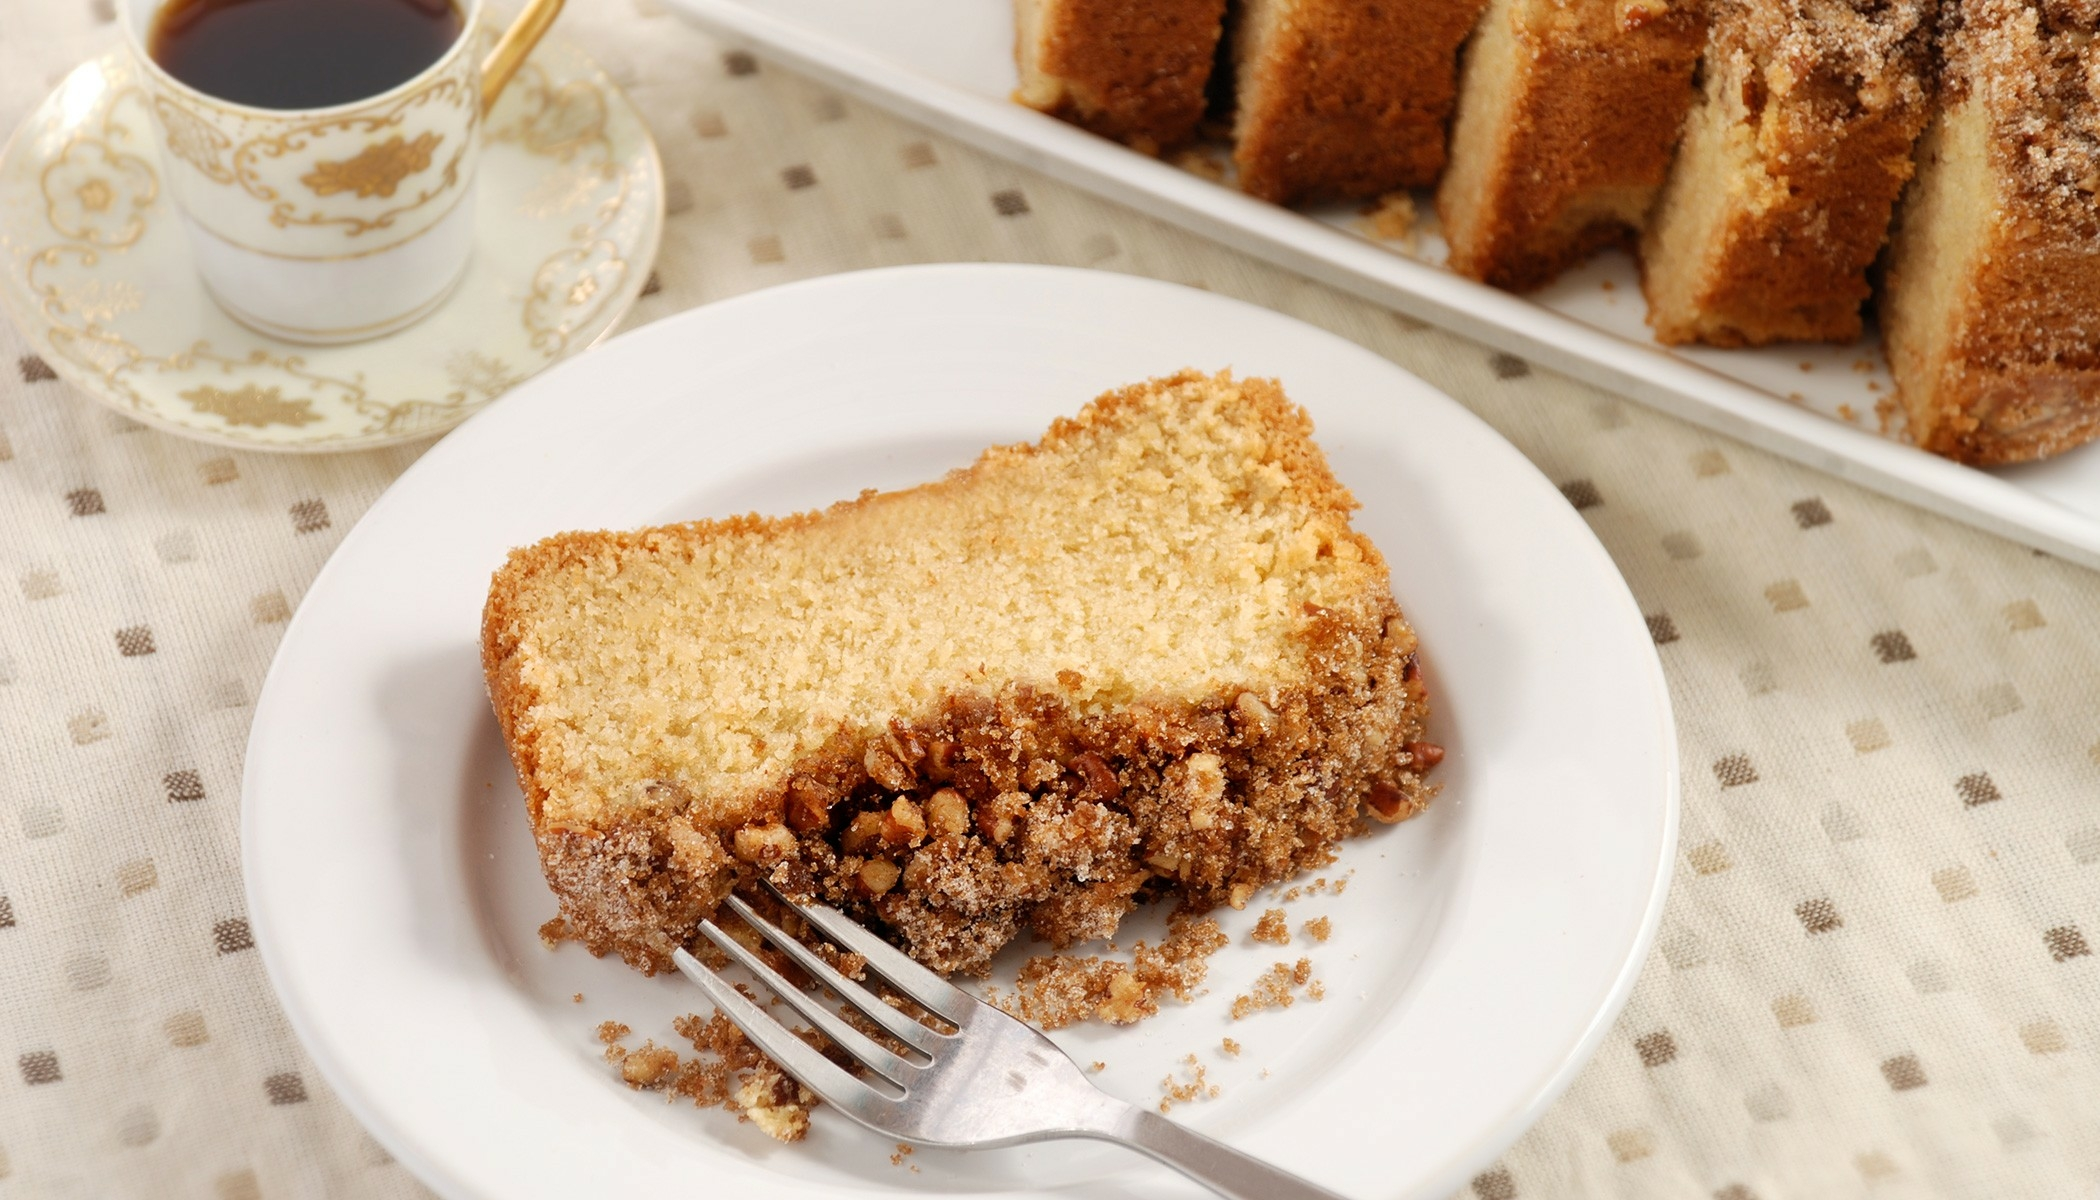 Cinnamon Pecan Sour Cream Coffee Cake